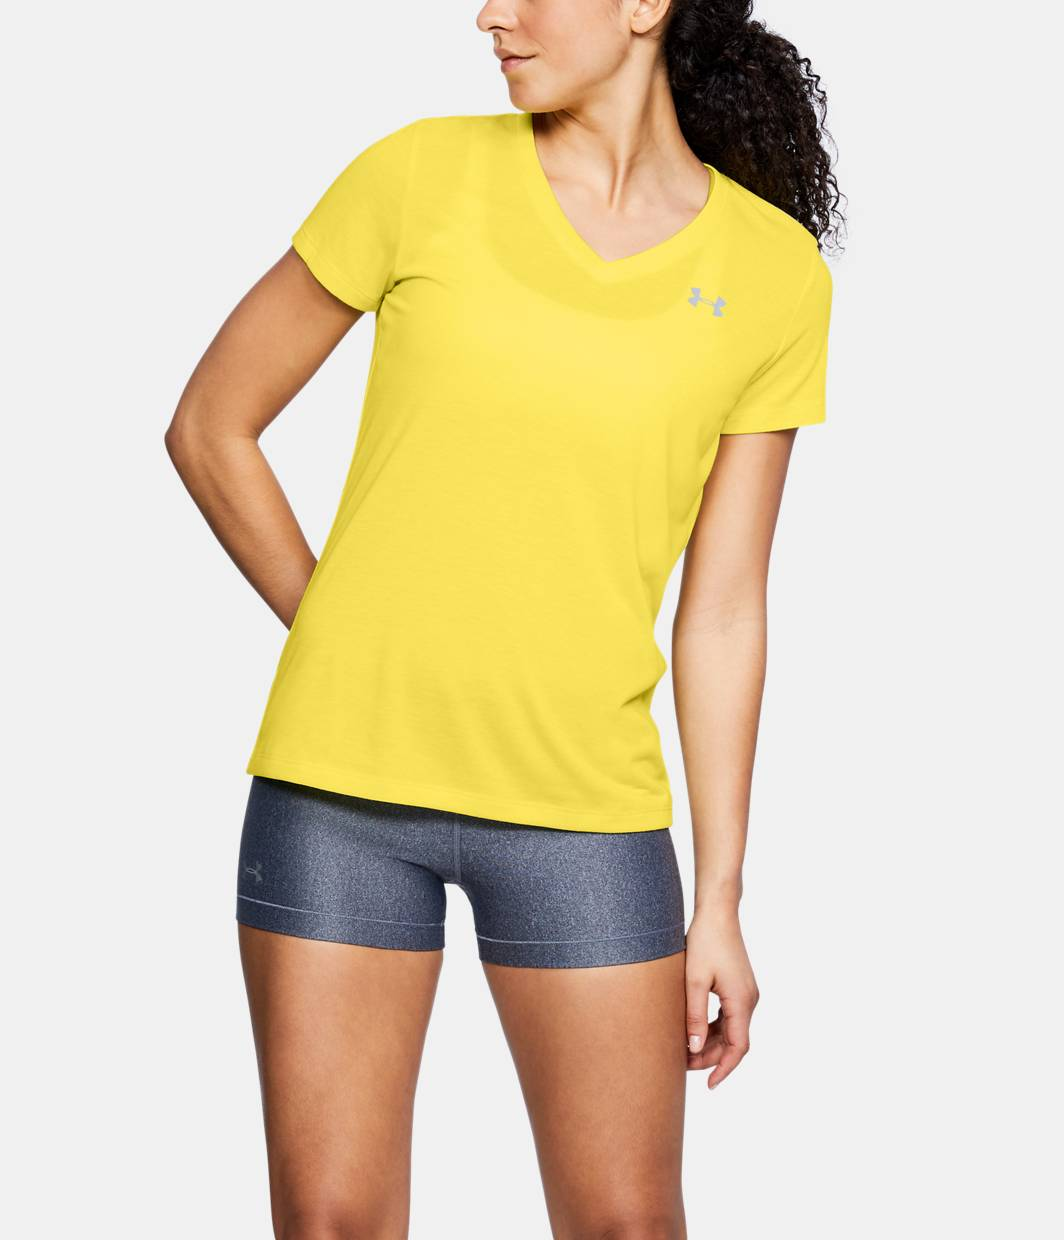 Free Returns! Find the perfect fit with women's plus size workout clothes from DICK'S Sporting Goods. Shop plus size apparel, plus size swimwear and plus size outerwear from top brands. If you find a lower price on women's plus sizes somewhere else, we'll match it with our Best Price Guarantee.